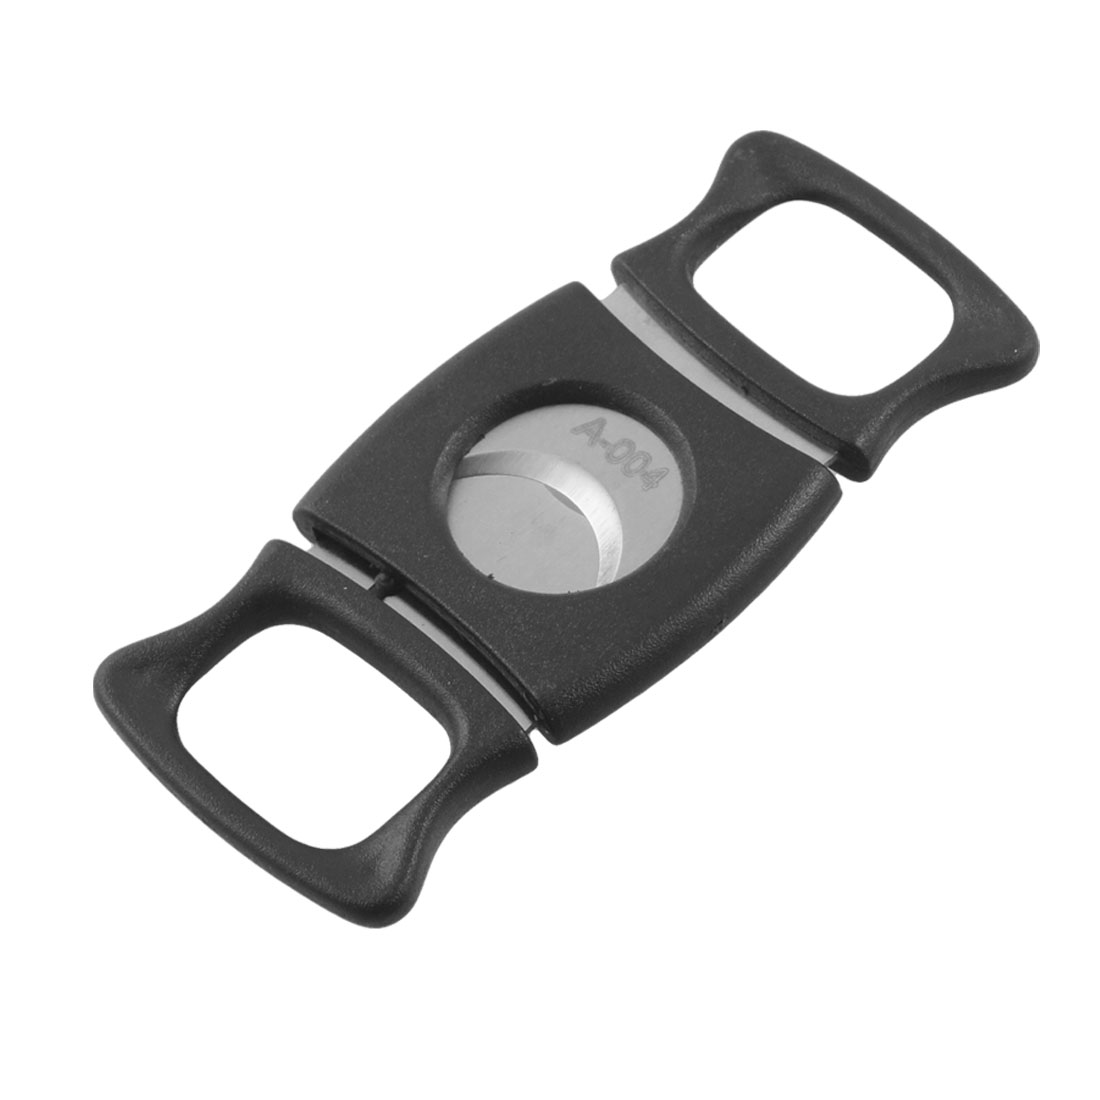 Black Plastic Handle Stainless Steel Cigar Scissors Cutter